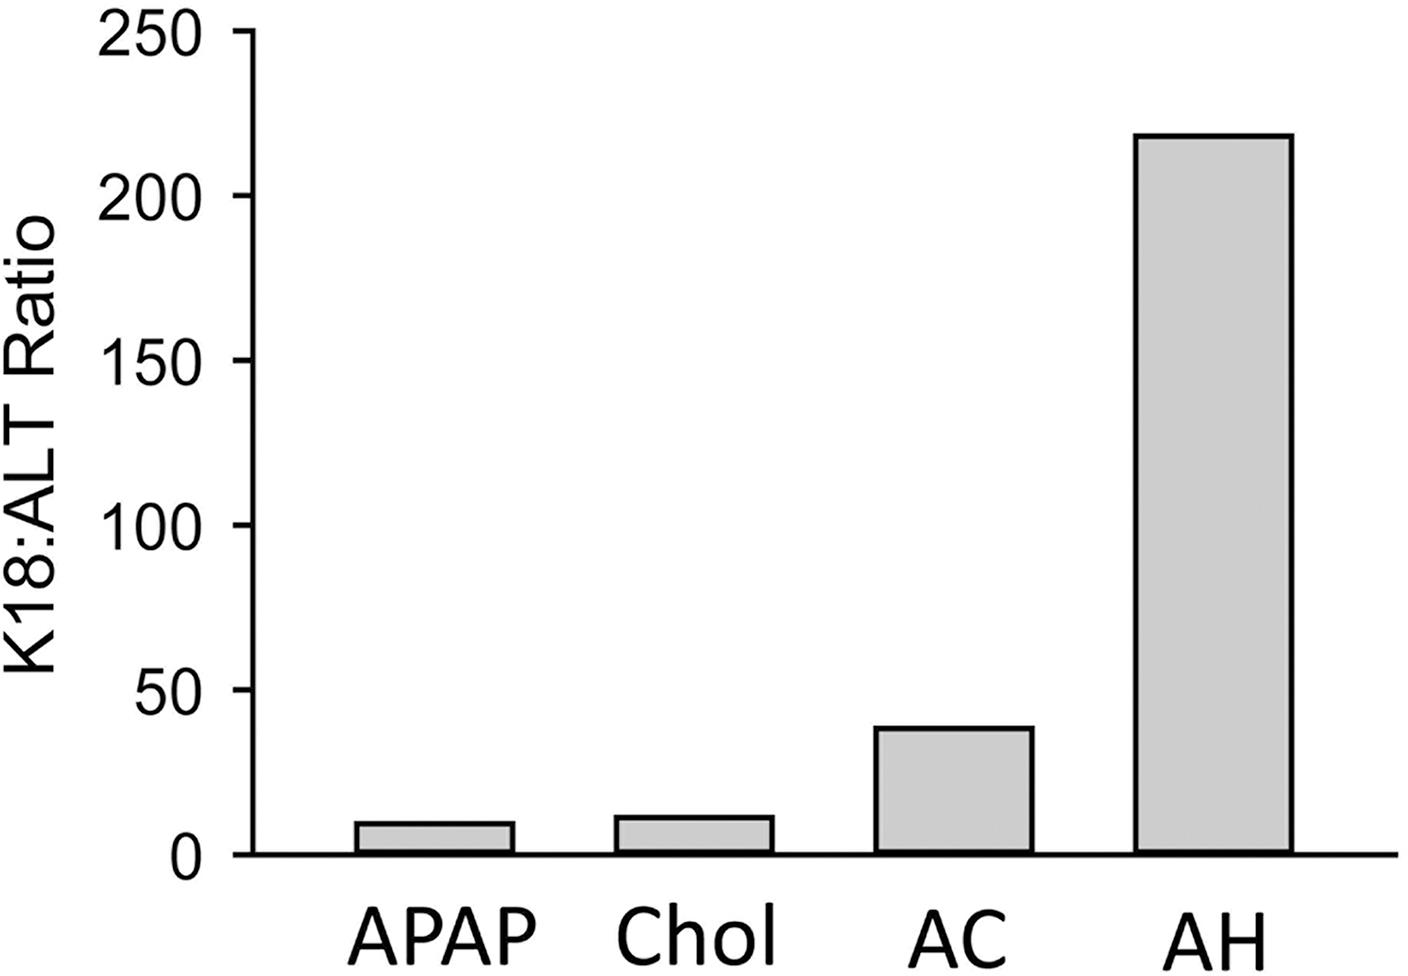 Ratio of K18 (M65) to plasma alanine aminotransferase (ALT) activity compiled from multiple studies.